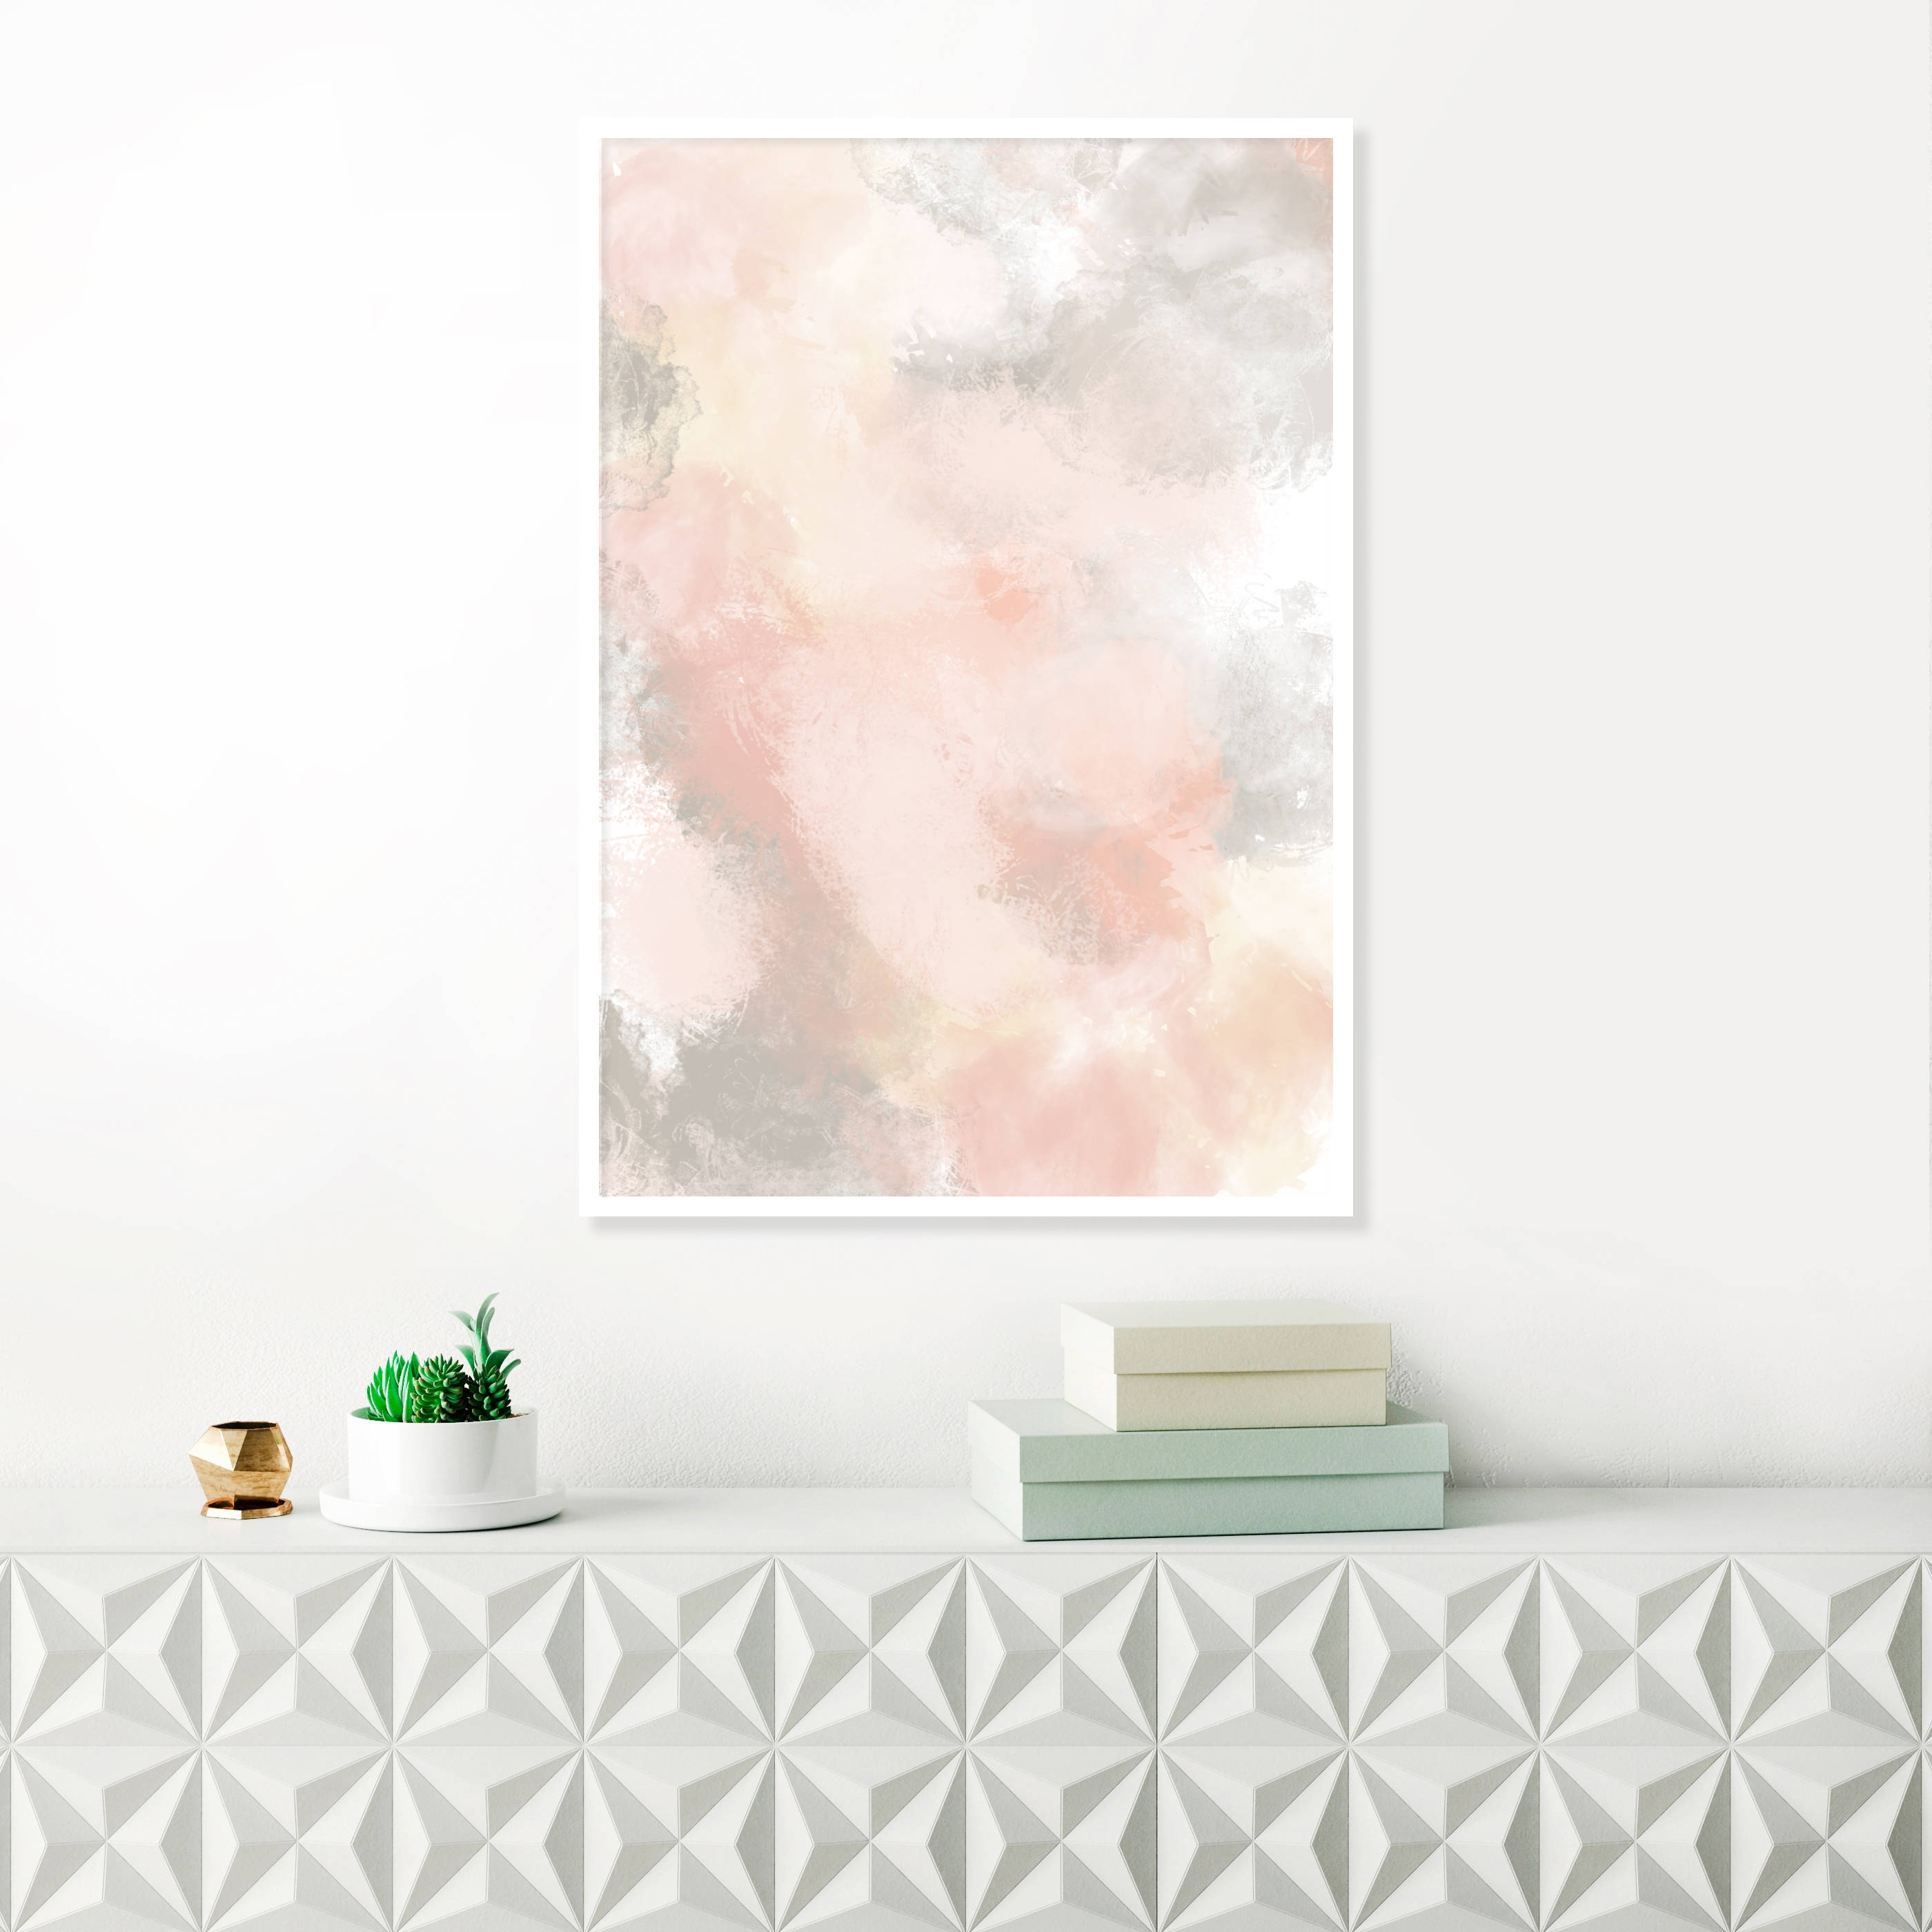 Blush Pink And Grey Painting, Pink Abstract Art, Pink Wall Art Pertaining To Latest Pink Abstract Wall Art (Gallery 1 of 20)